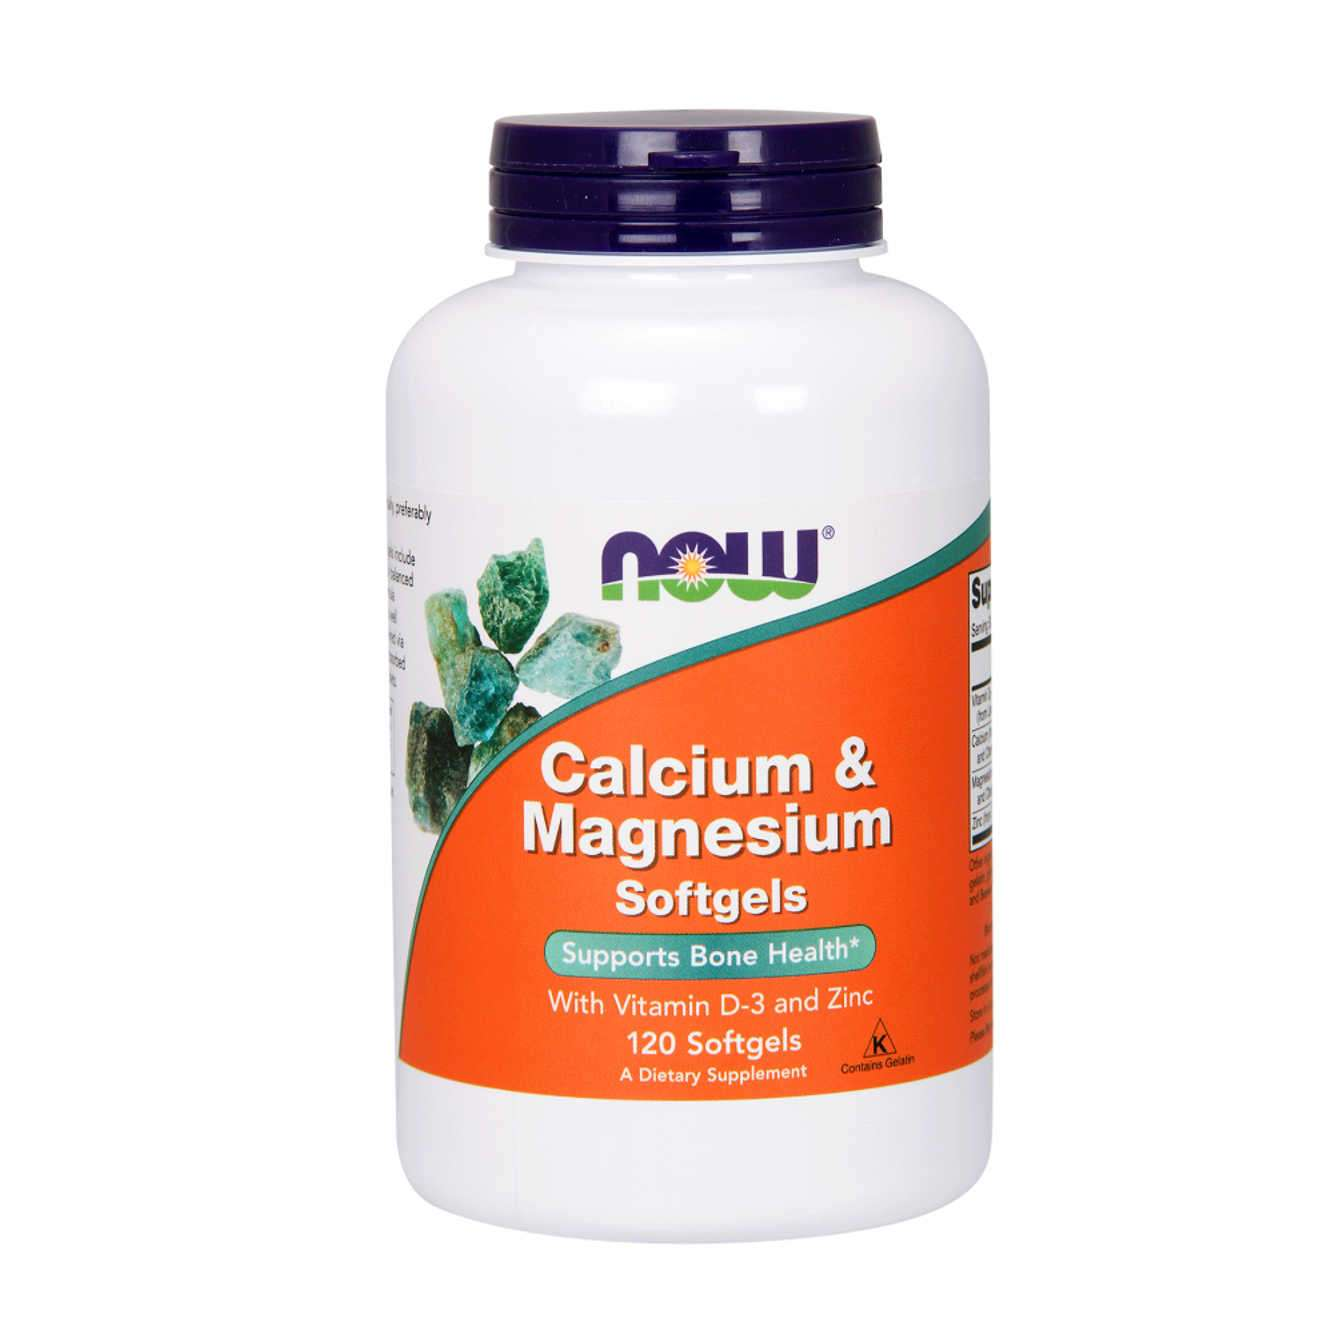 CALCIO + MAGNESIO 333mg/166mg - 120 softgels